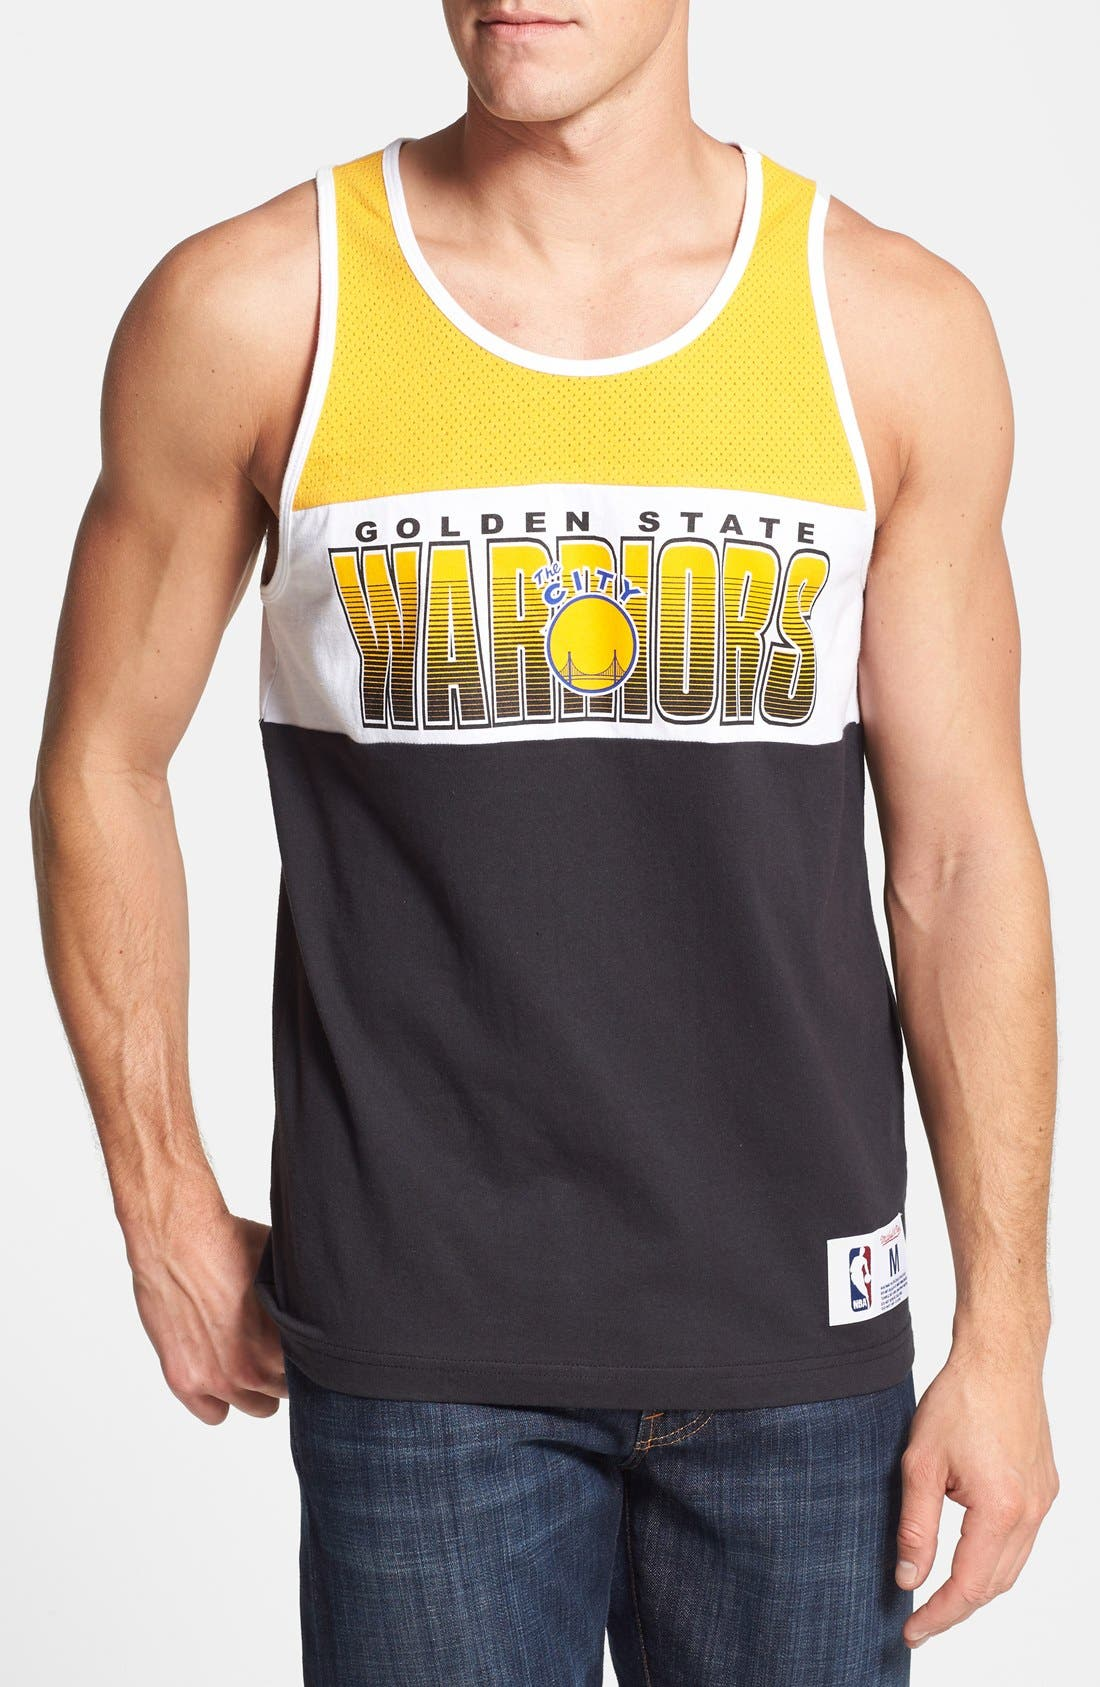 Alternate Image 1 Selected - Mitchell & Ness 'Golden State Warriors - Home Stand' Tank Top